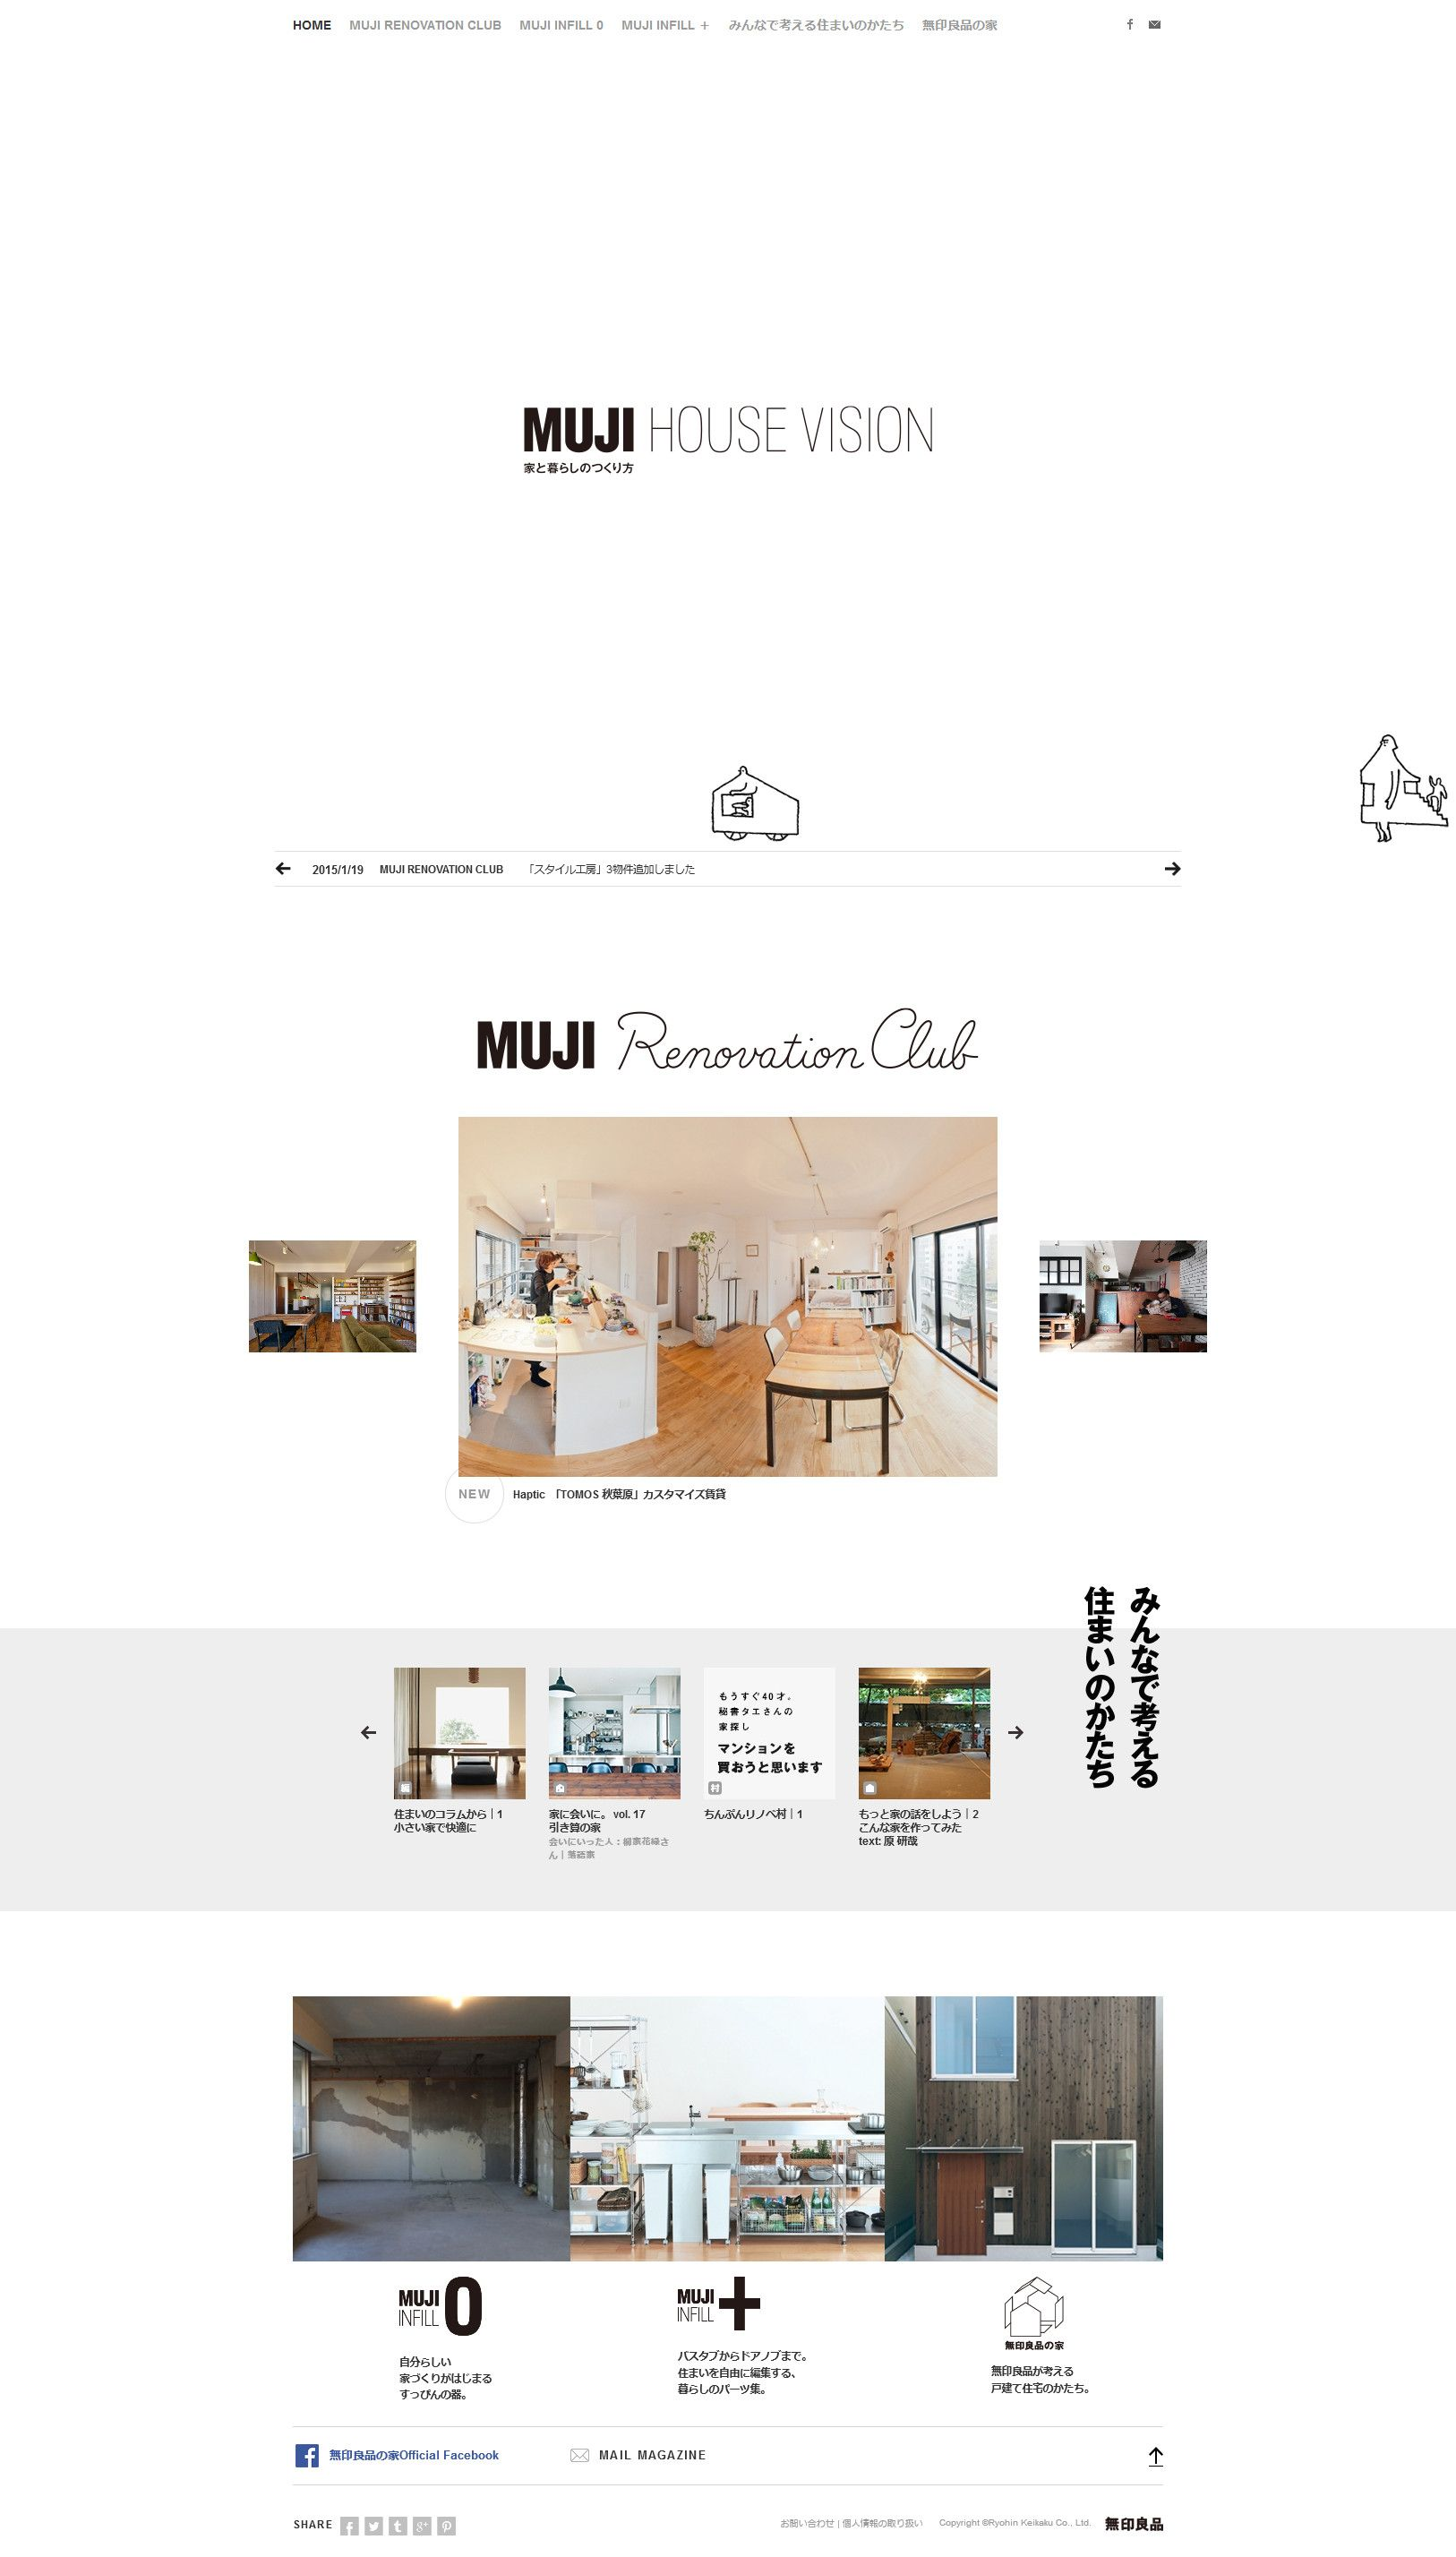 MUJI HOUSE VISION Website Pinterest Houses and Muji house